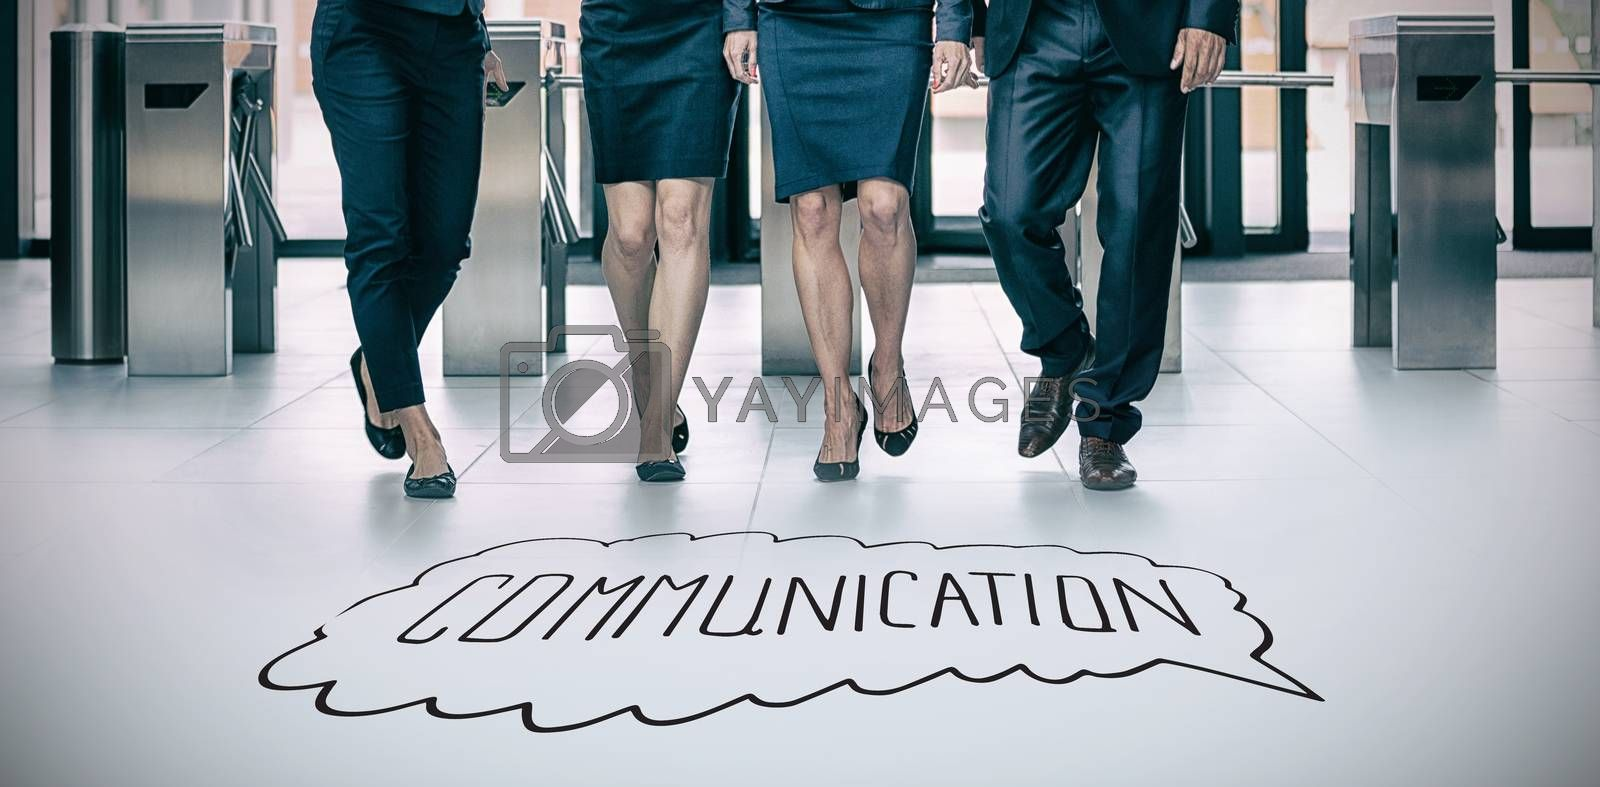 Composite image of handdrawn communication  by Wavebreakmedia